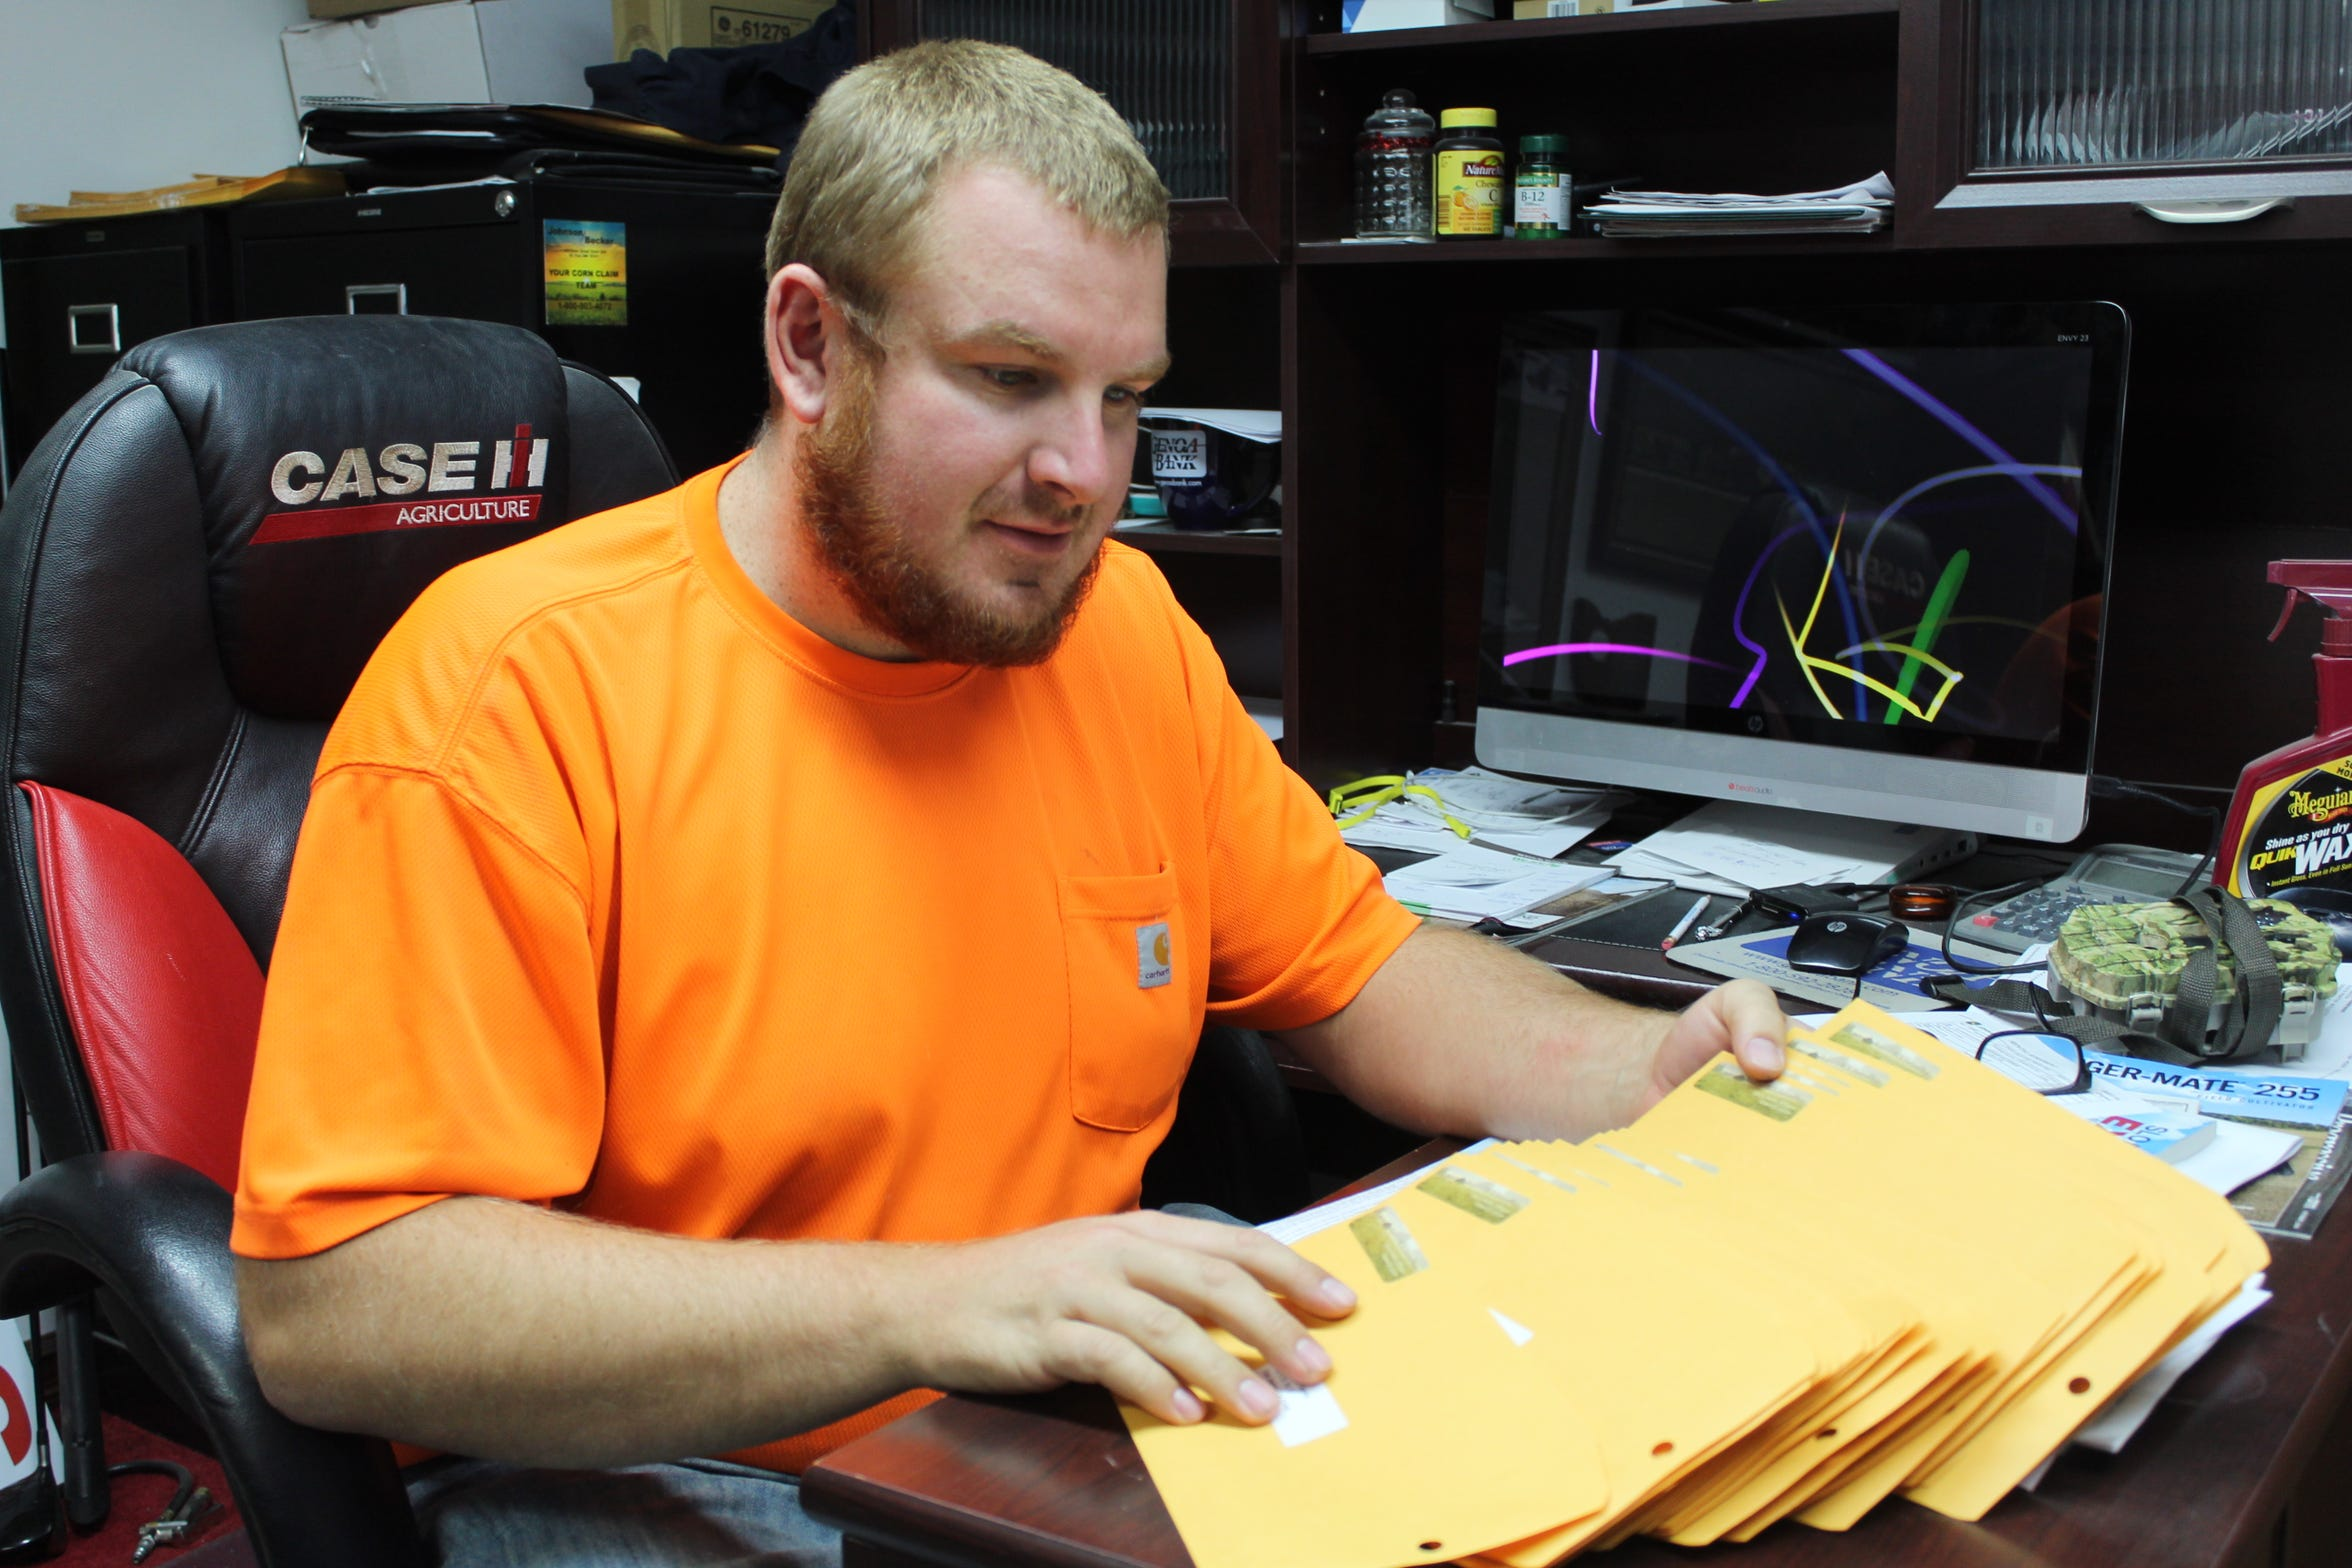 Genoa farmer Chad Gargas shows the pile of envelopes, which include rent checks and his annual newsletters, that he will mail to absentee landlords, insurance agents and farm cooperatives by Nov. 1.